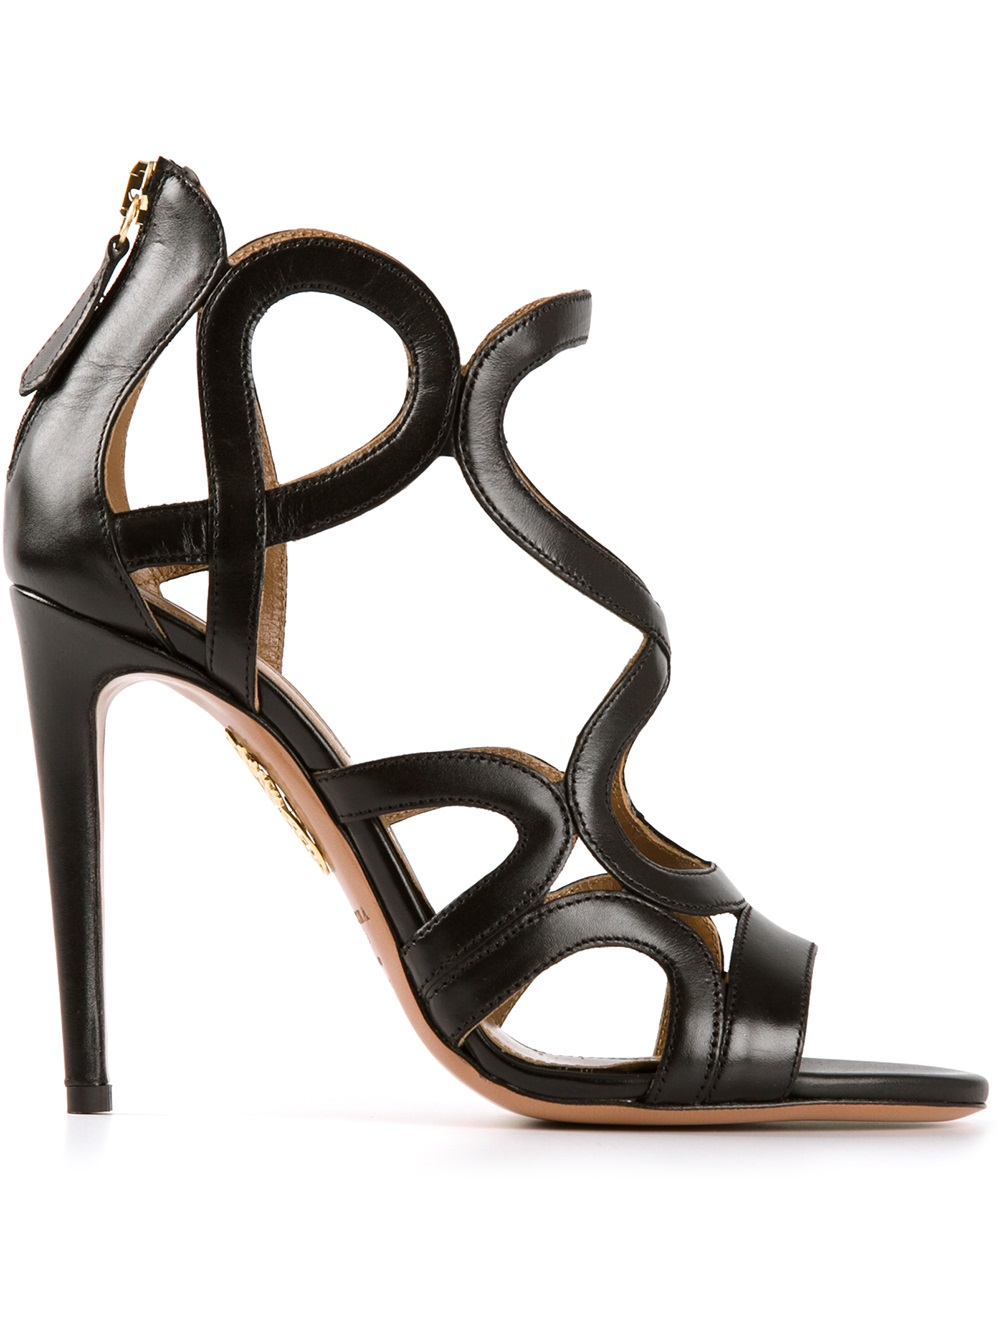 Aquazzurastrappy hight heel sandal